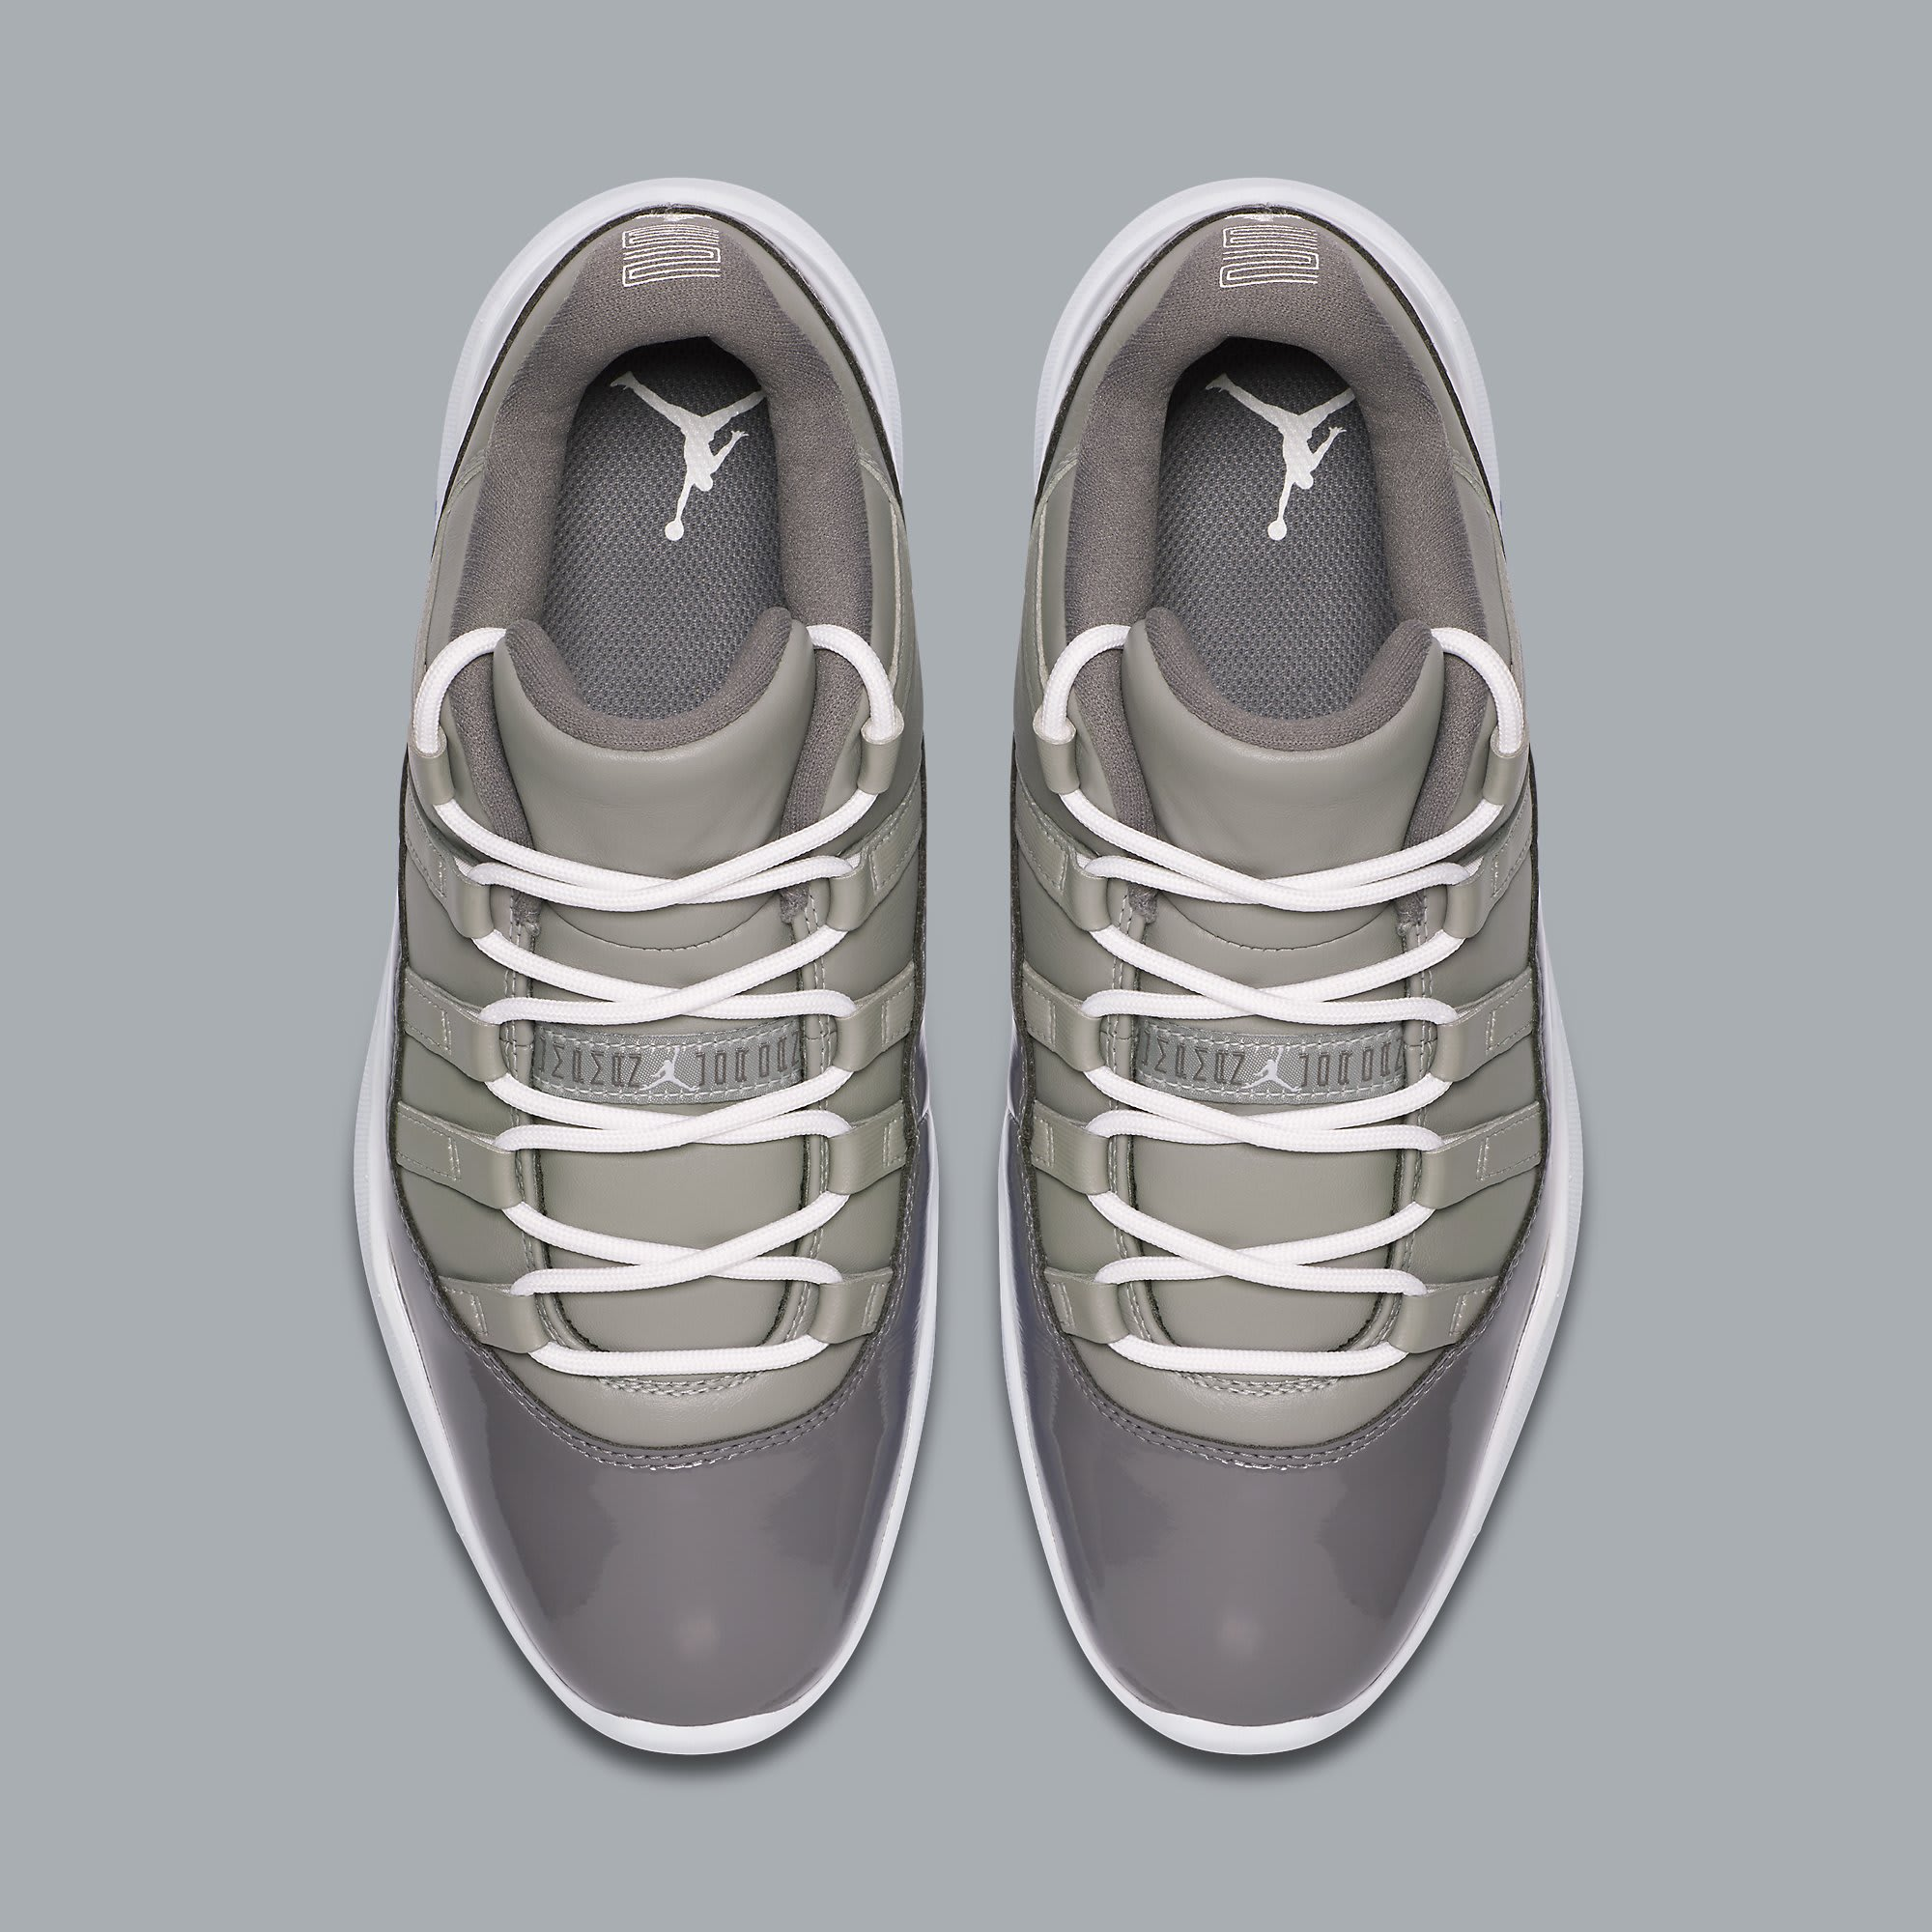 Air Jordan 11 Low Golf Cool Grey Release Date AQ0963-002 Top